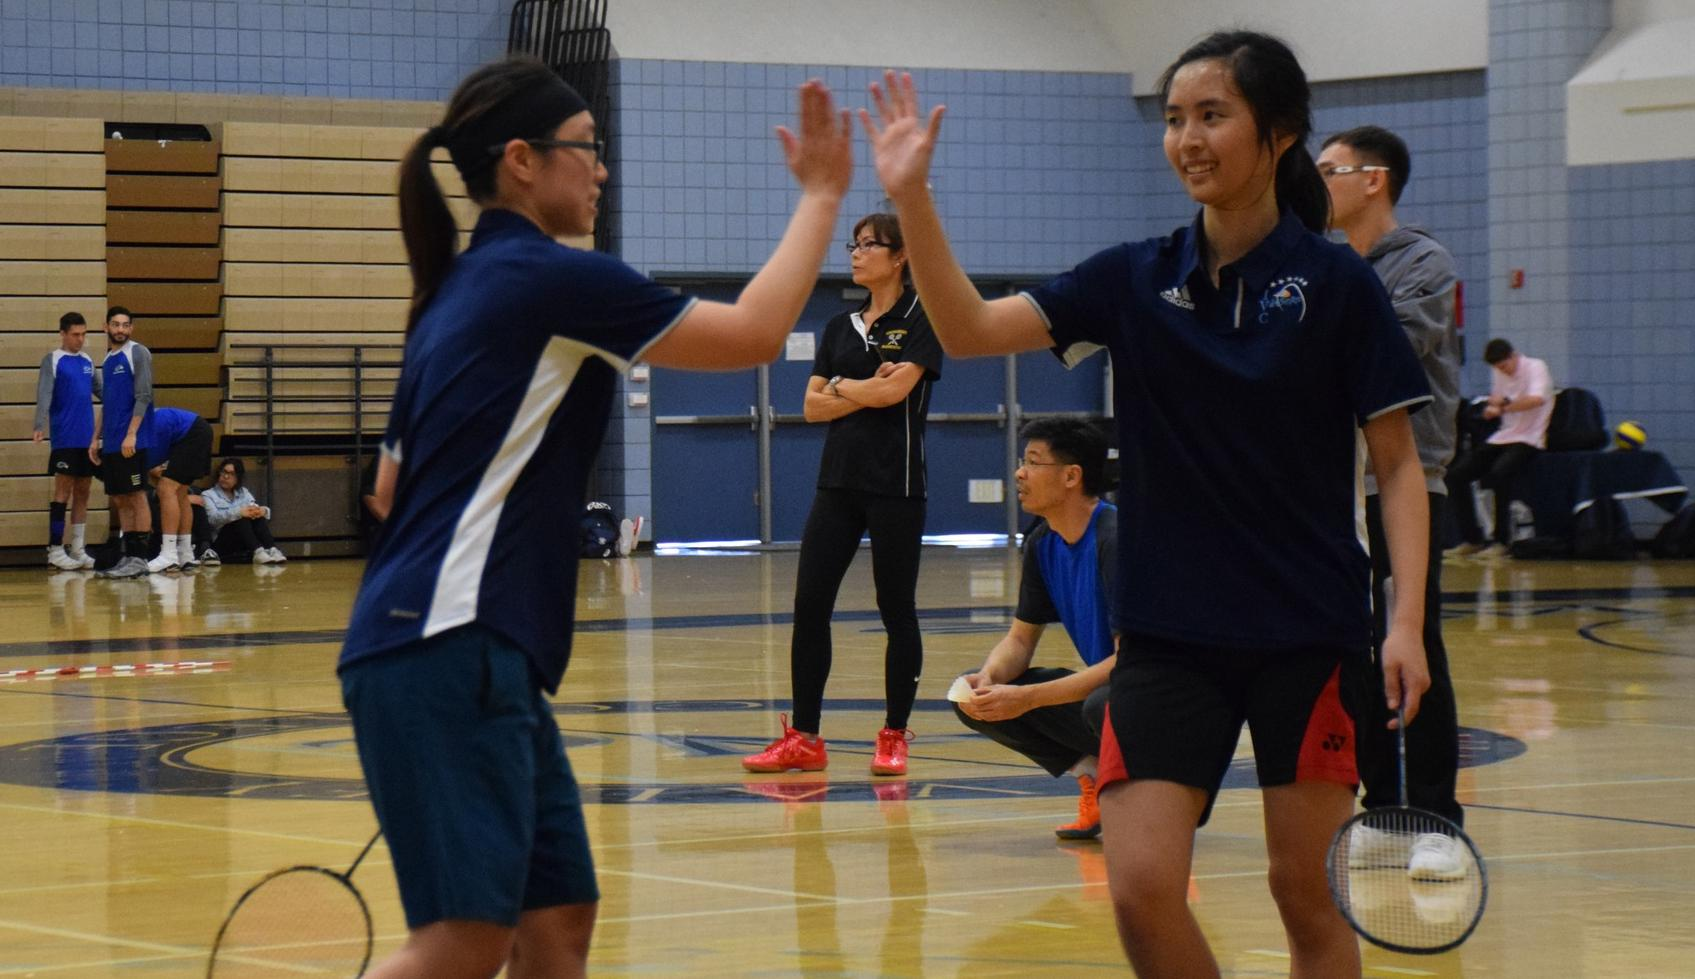 Women's badminton players qualify for state individual tourney